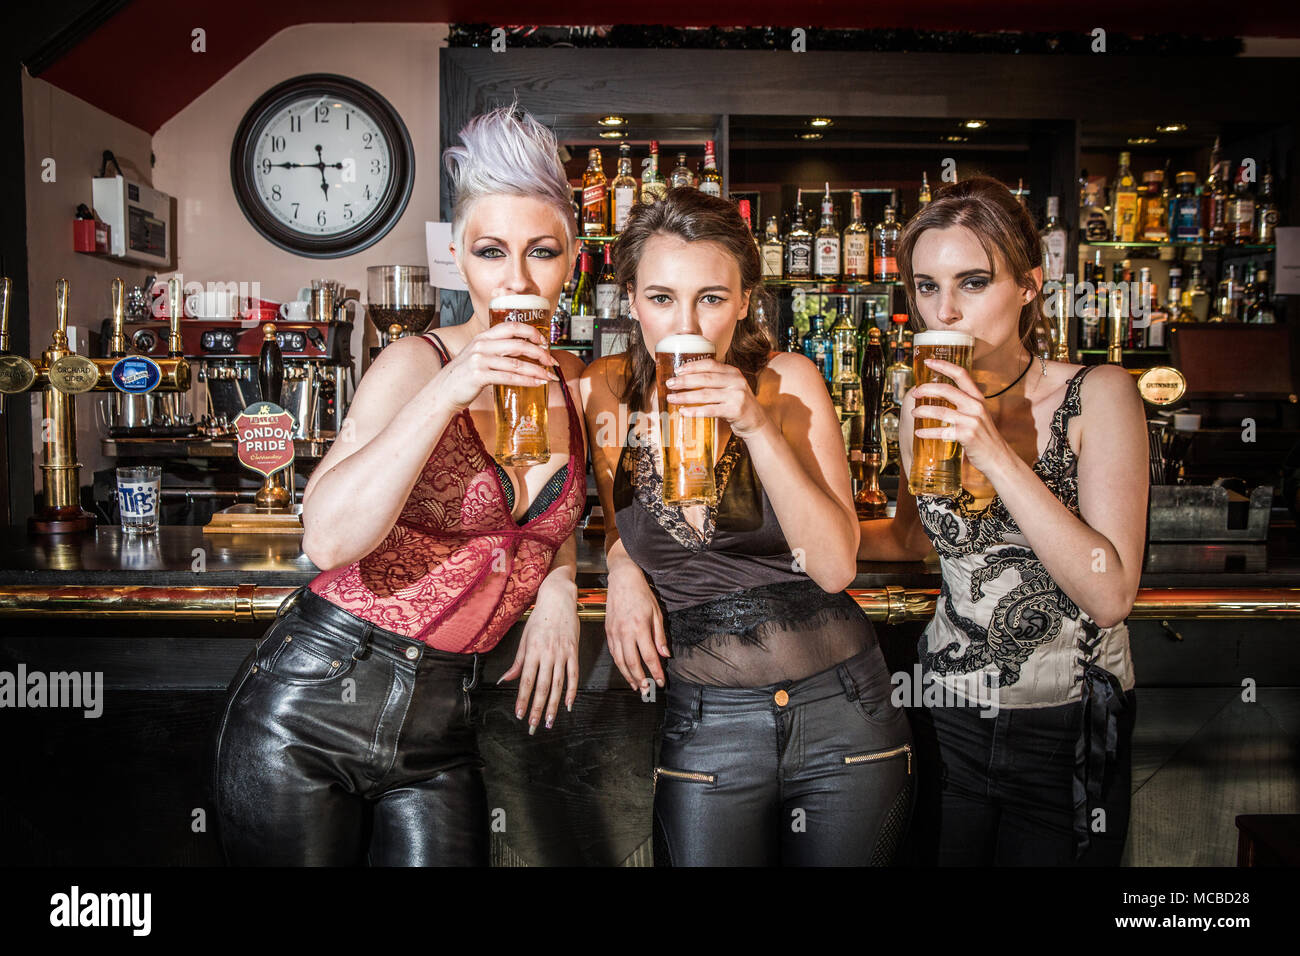 Drunk Girls British Stock Photos Amp Drunk Girls British